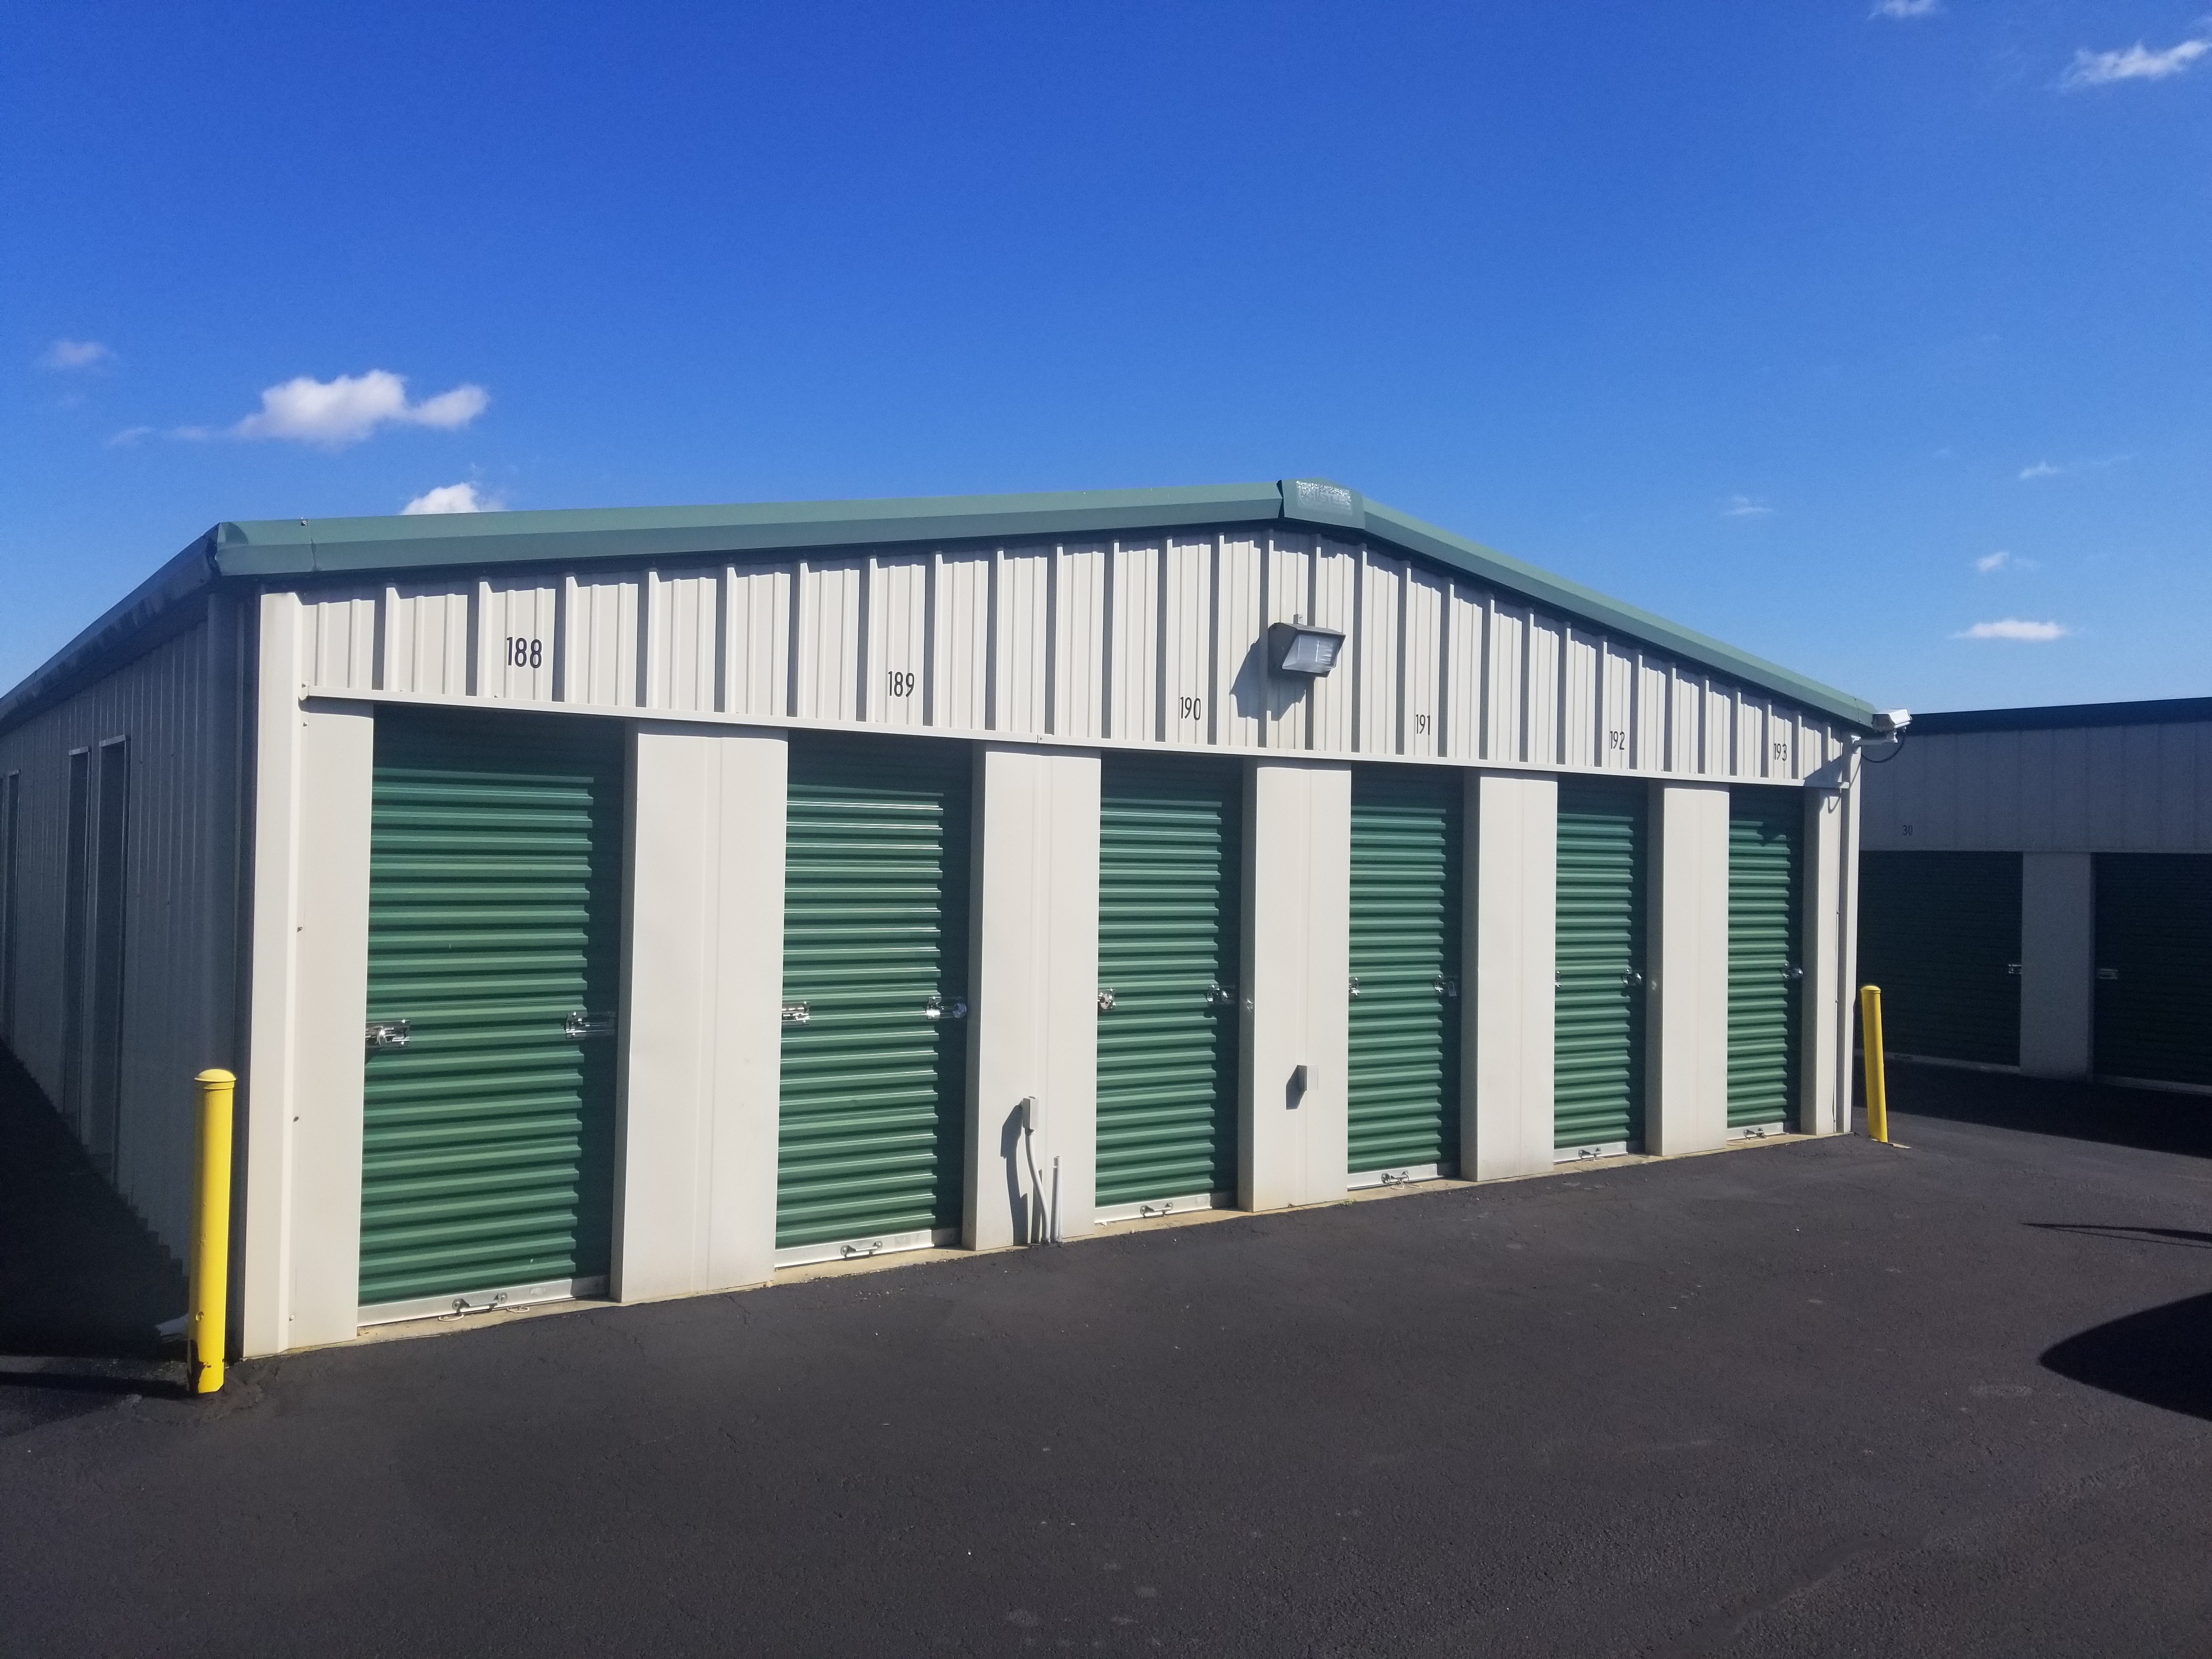 Gated Self Storage in Pilot Mountain NC